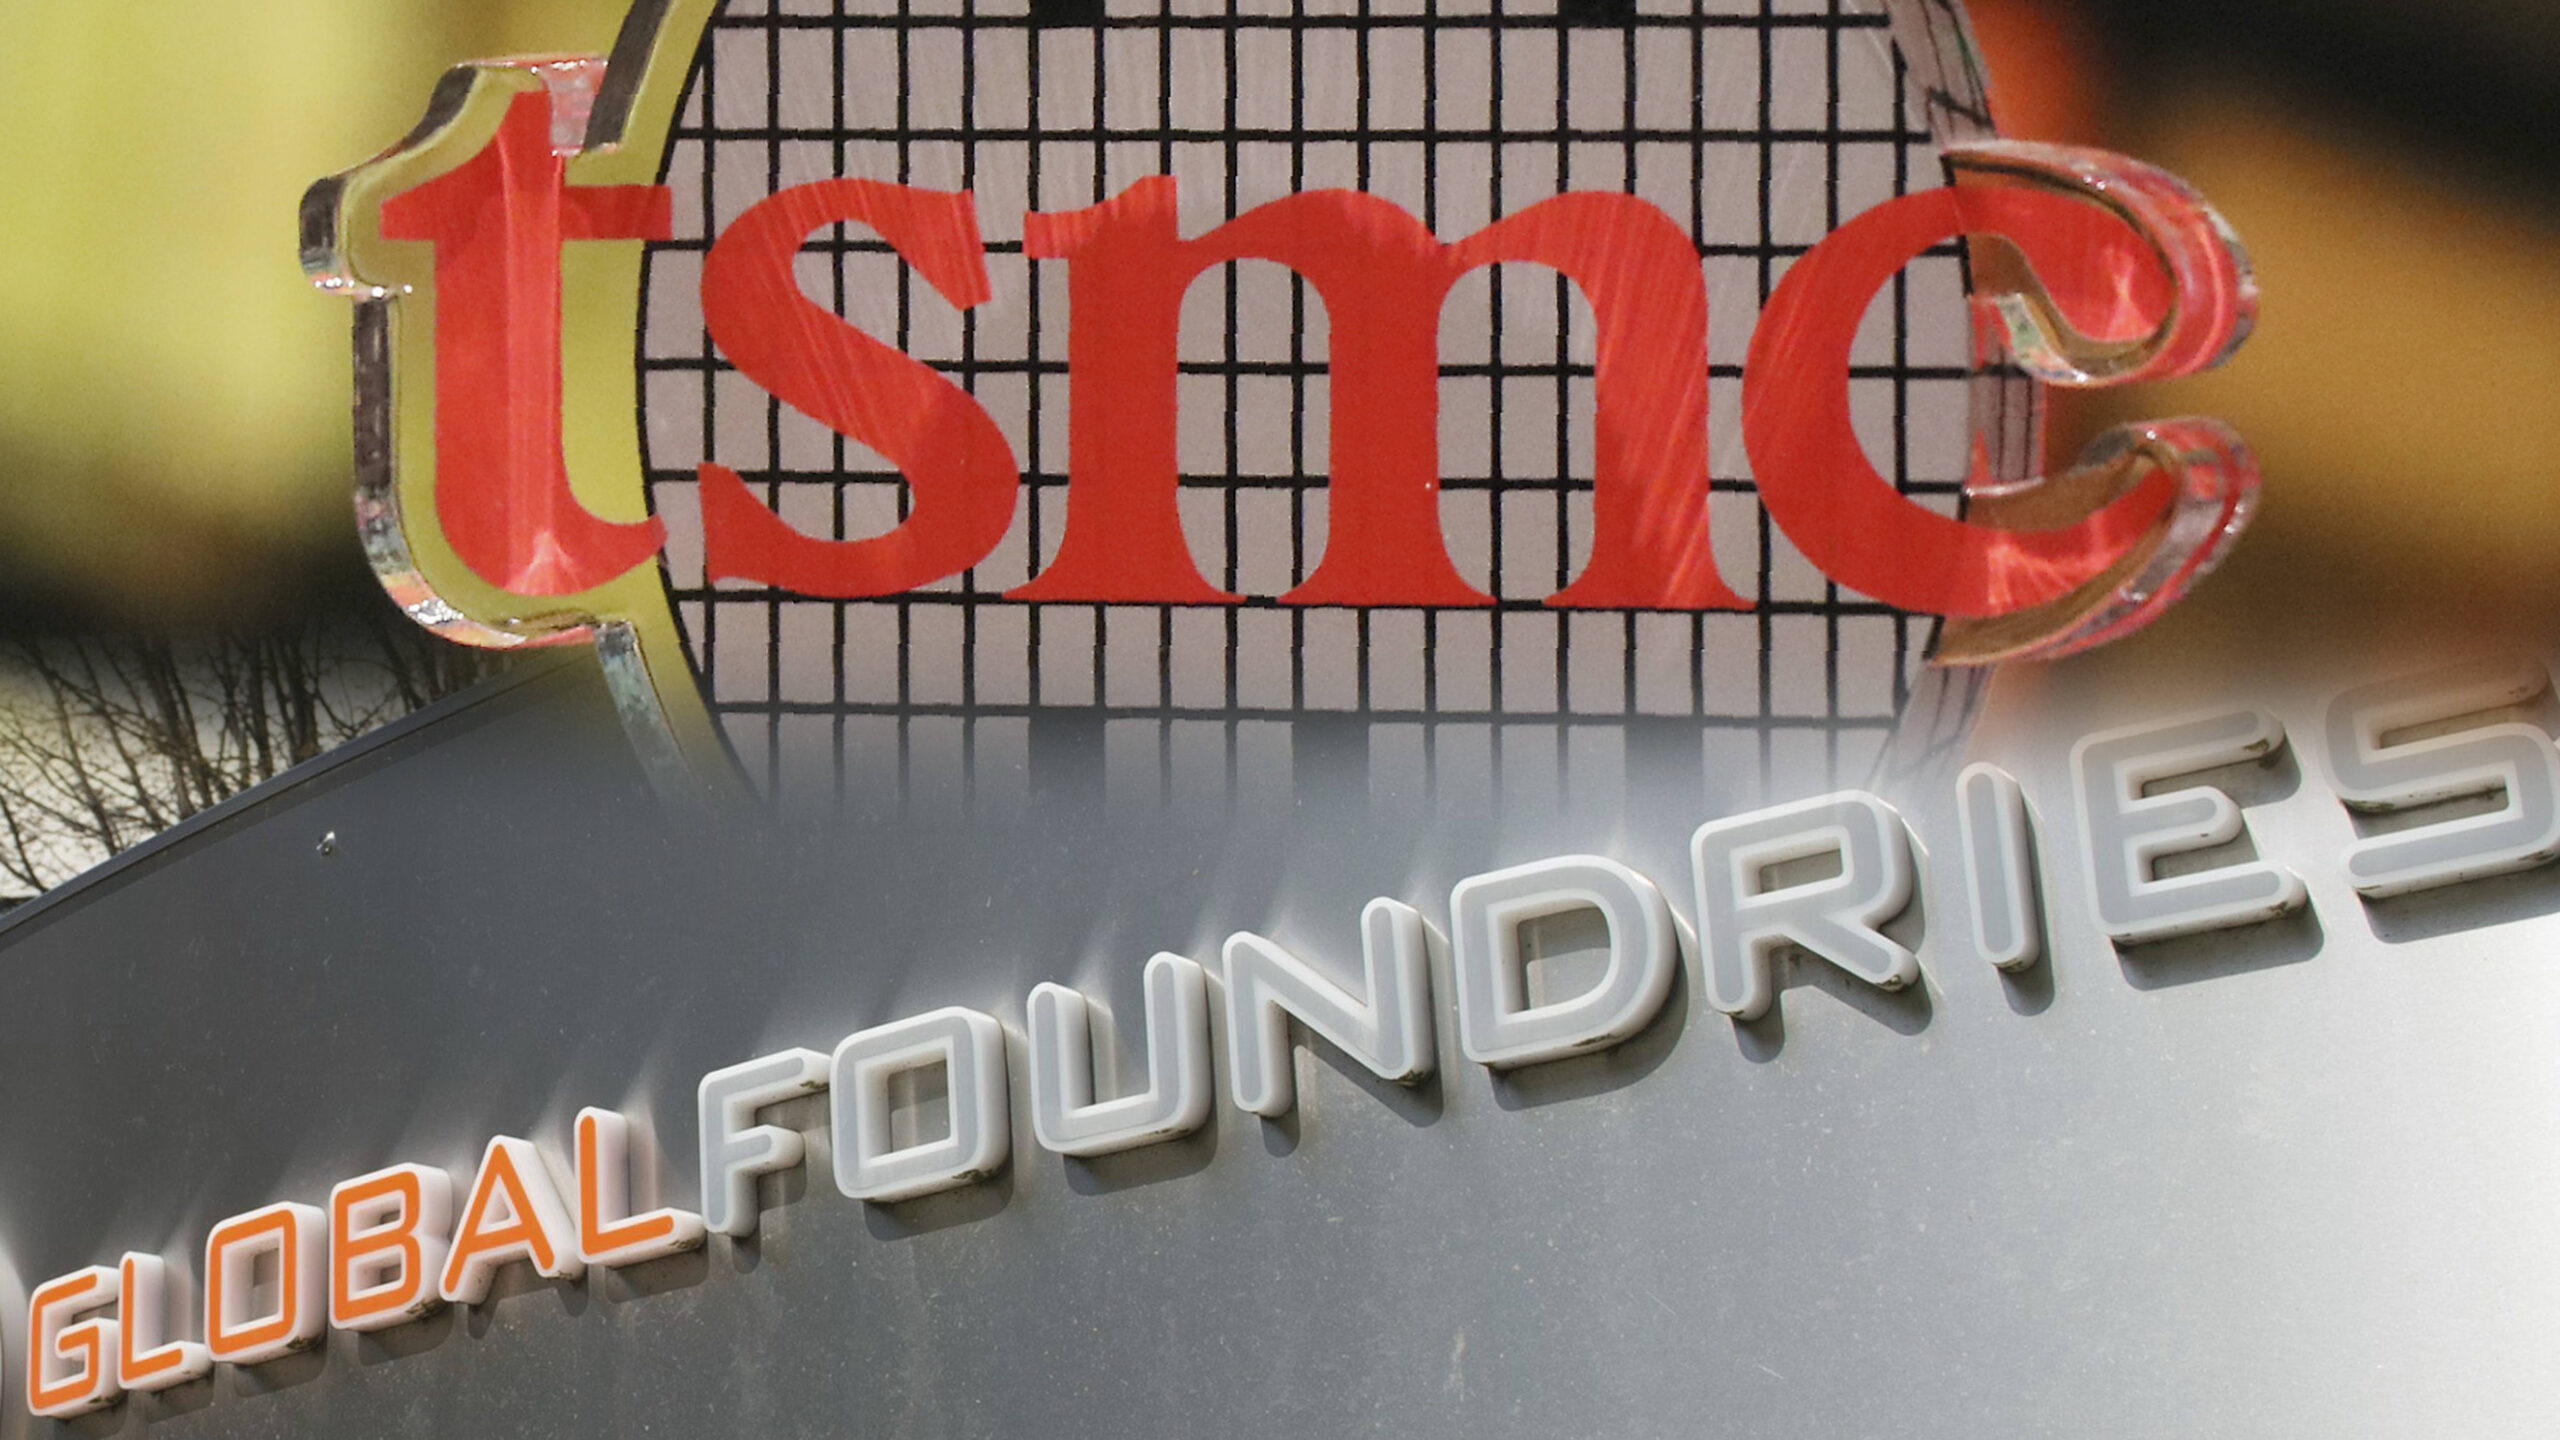 Lawsuits filed against TSMC could lead to U.S. import ban